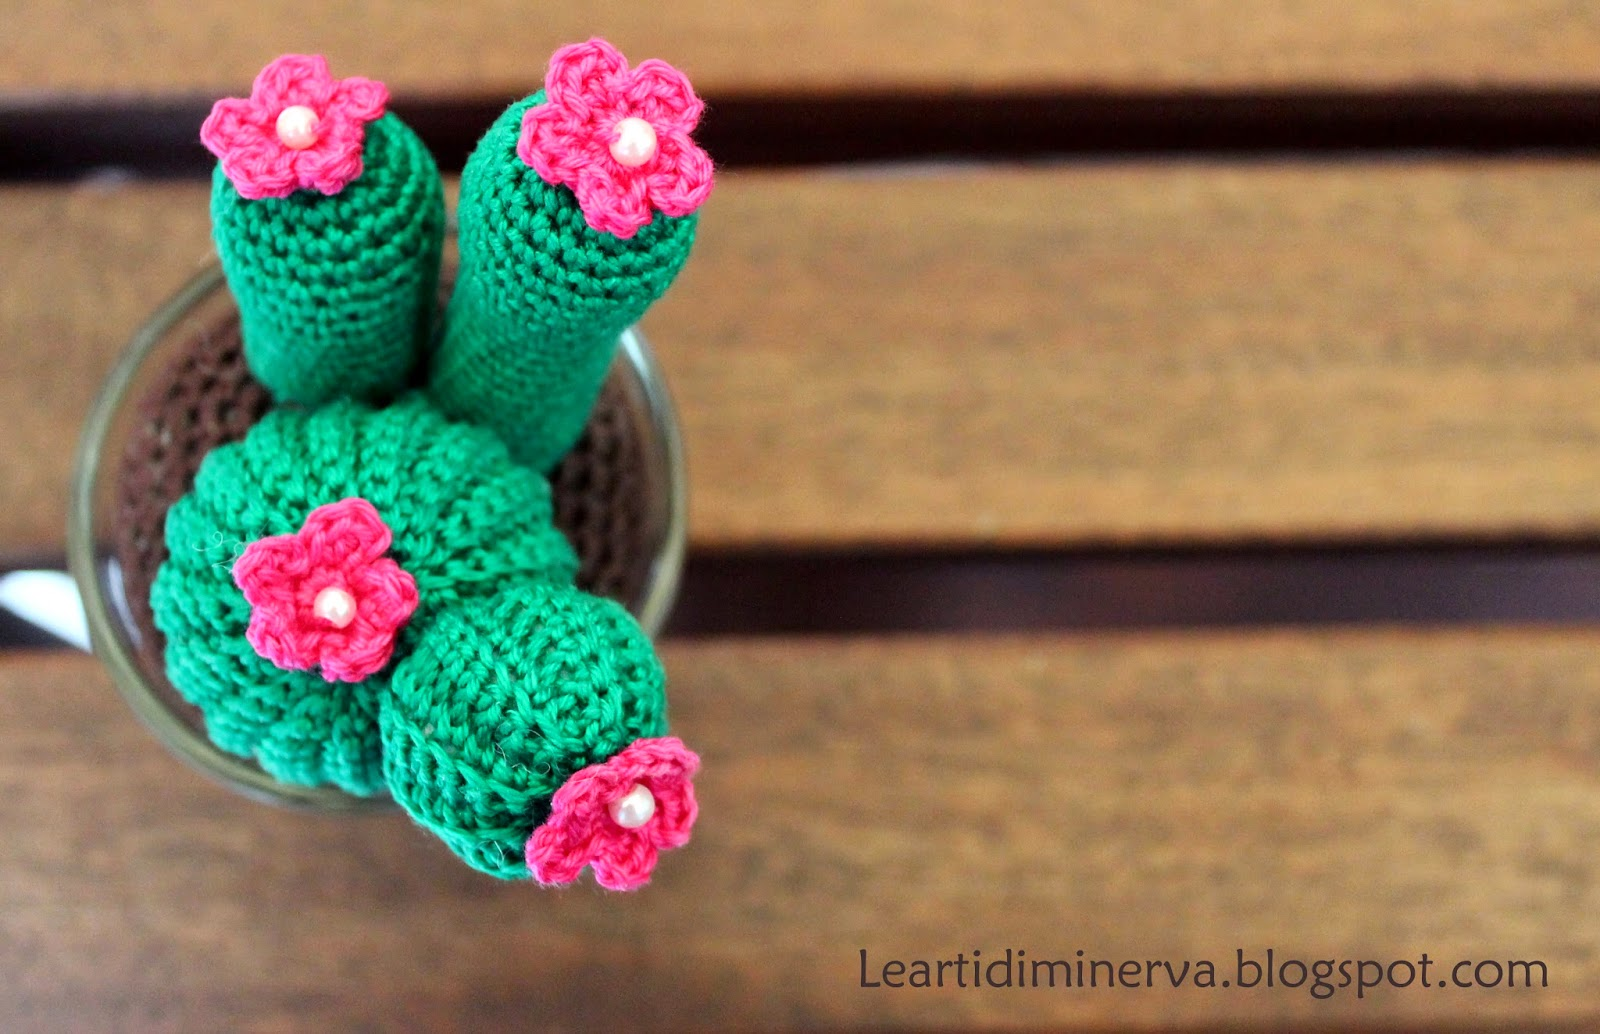 Free Crochet Pattern For A Cactus Amigurumi ⋆ Crochet Kingdom